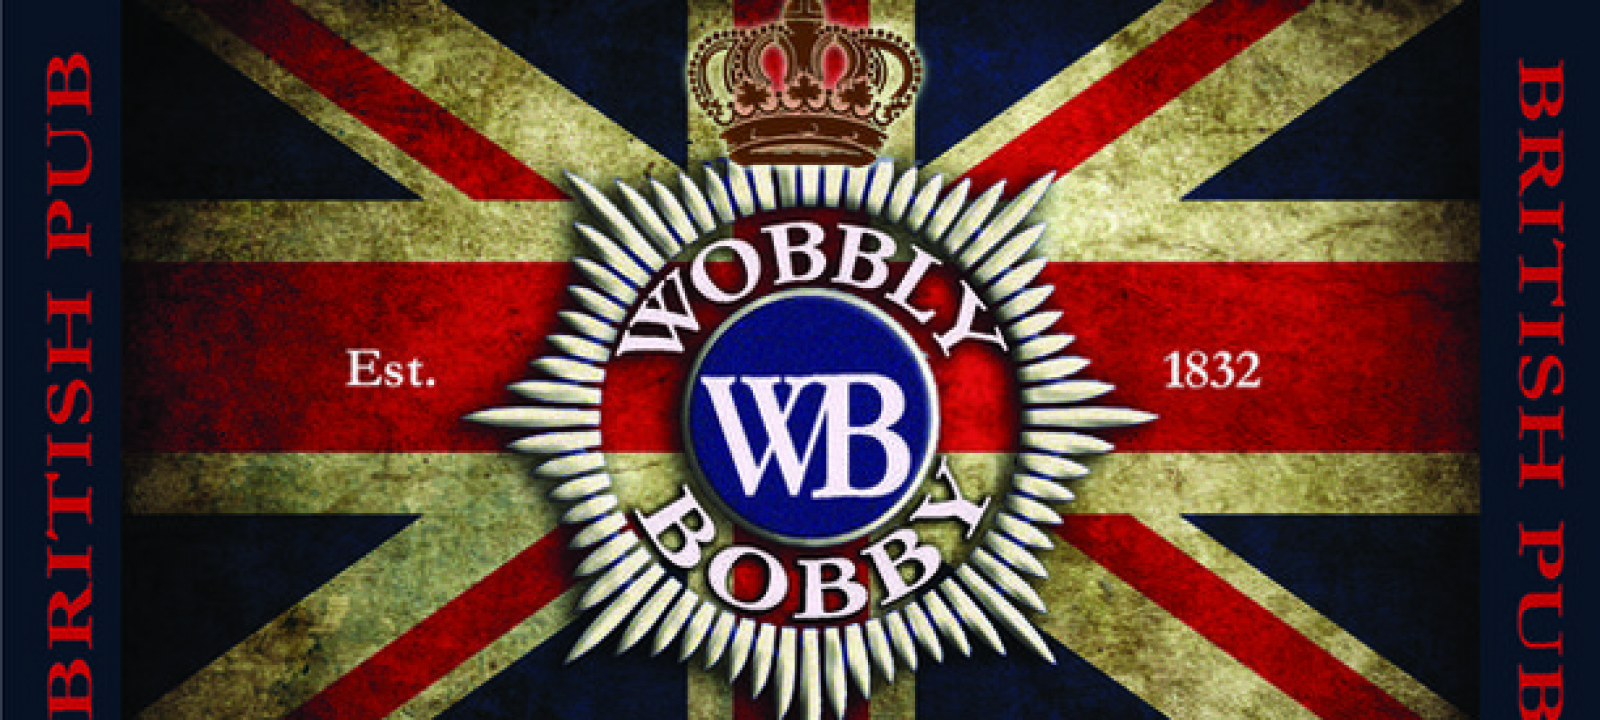 Wobbly Bobby British Pub